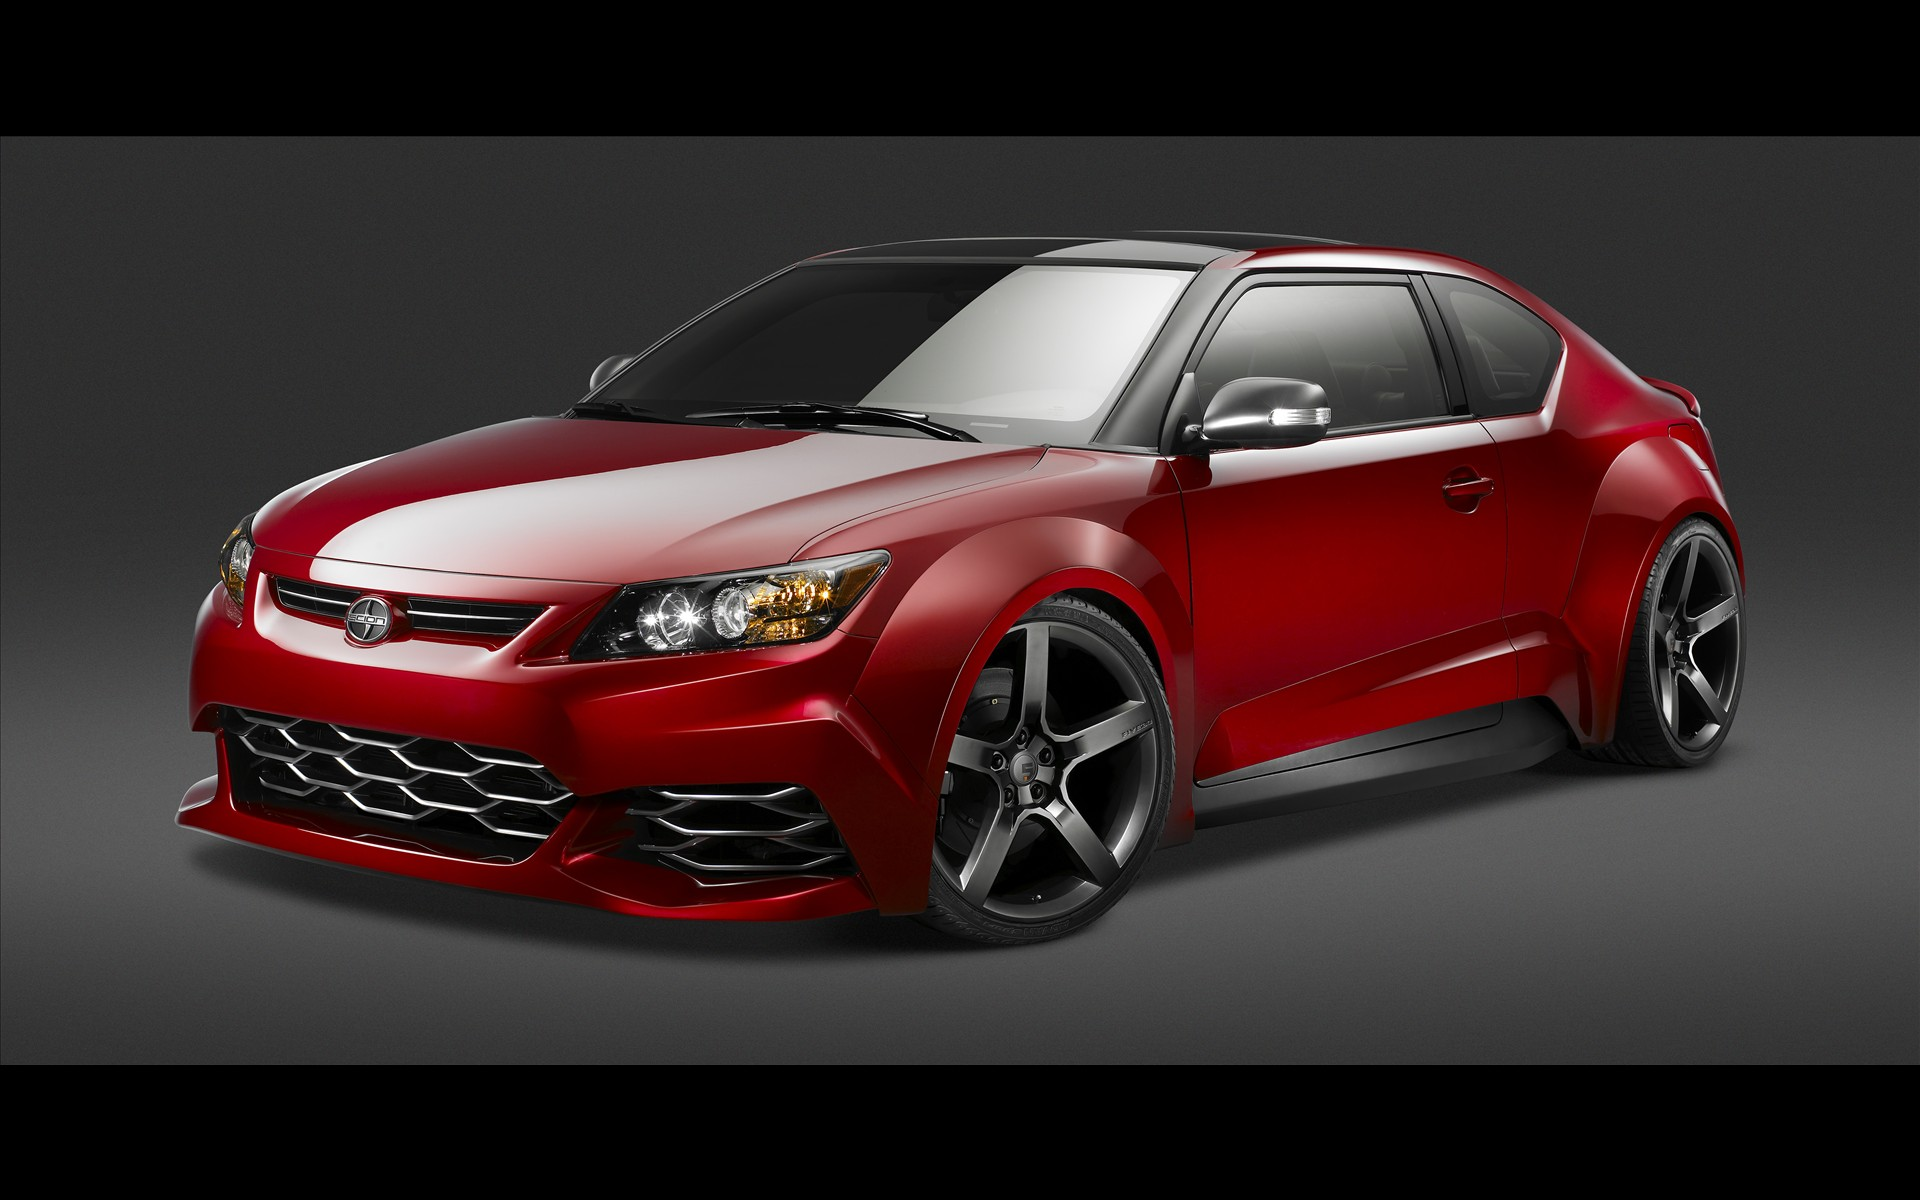 Scion tC Car Wallpaper – 1920 x 1200 pixels – 274 kB